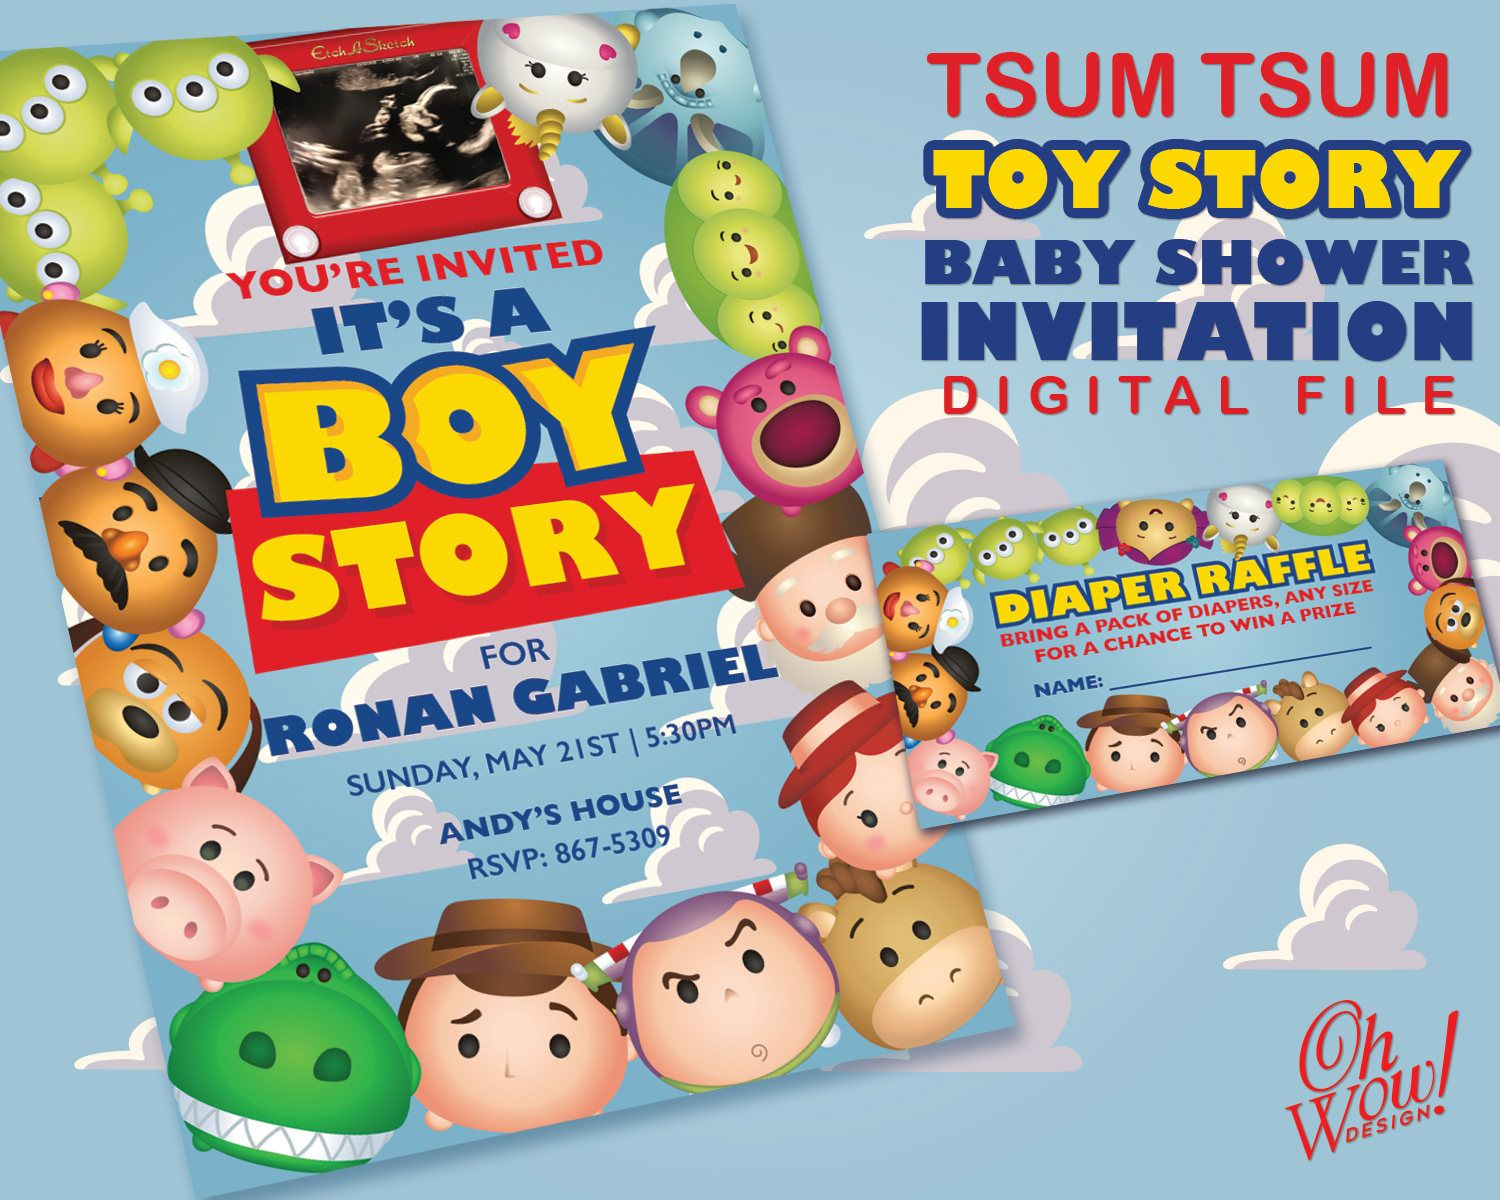 Tsum Tsum Toy Story Theme Baby Shower Invitation With Diaper Raffle